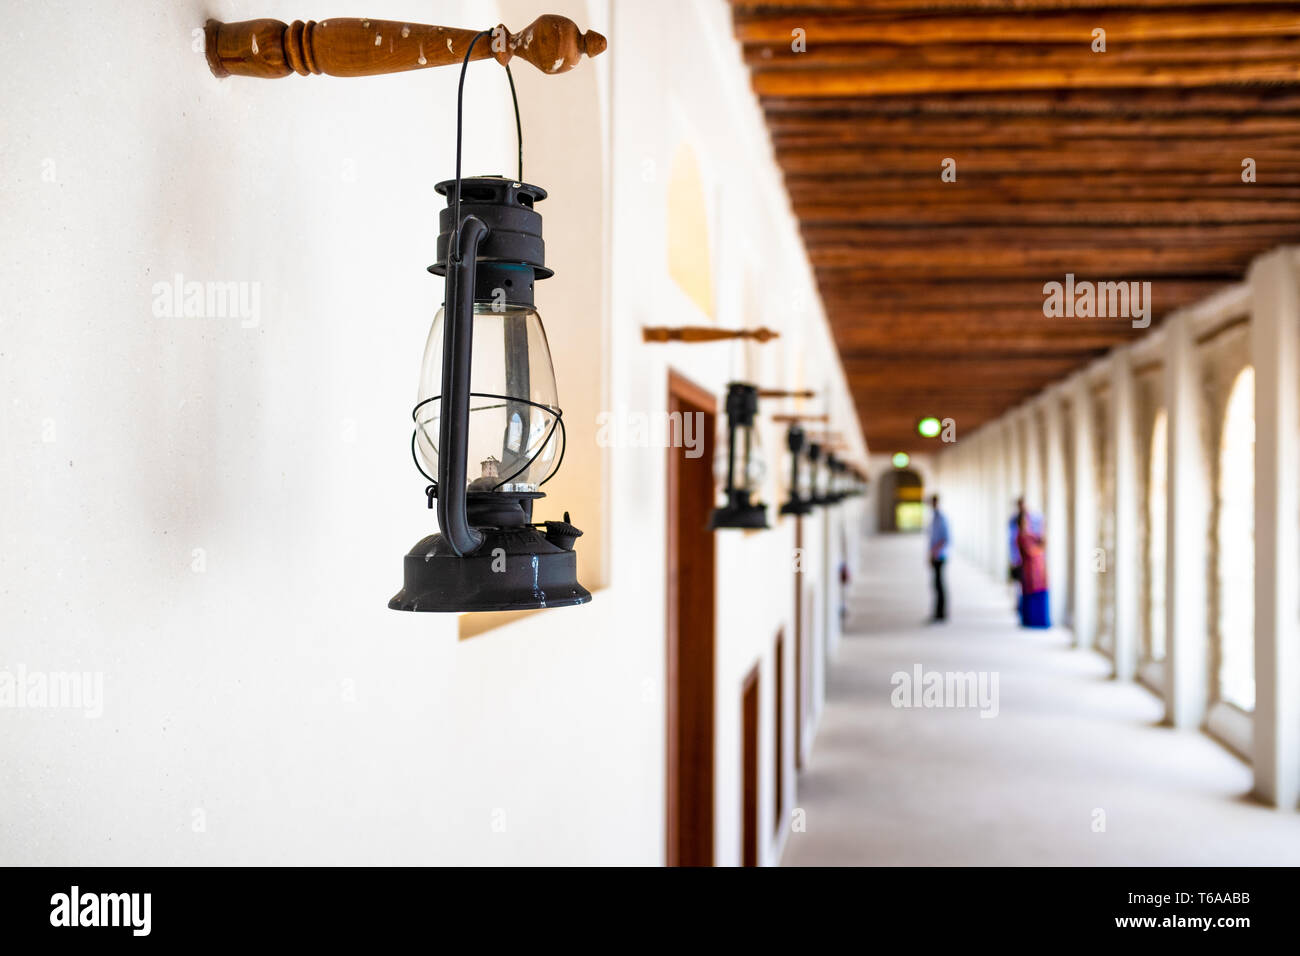 Landscape photo of a close-up view on a kerosene lamp in one of the open-air corridor forming a one point perspective in the Qasr Al-Hosn Fort in Abu  - Stock Image